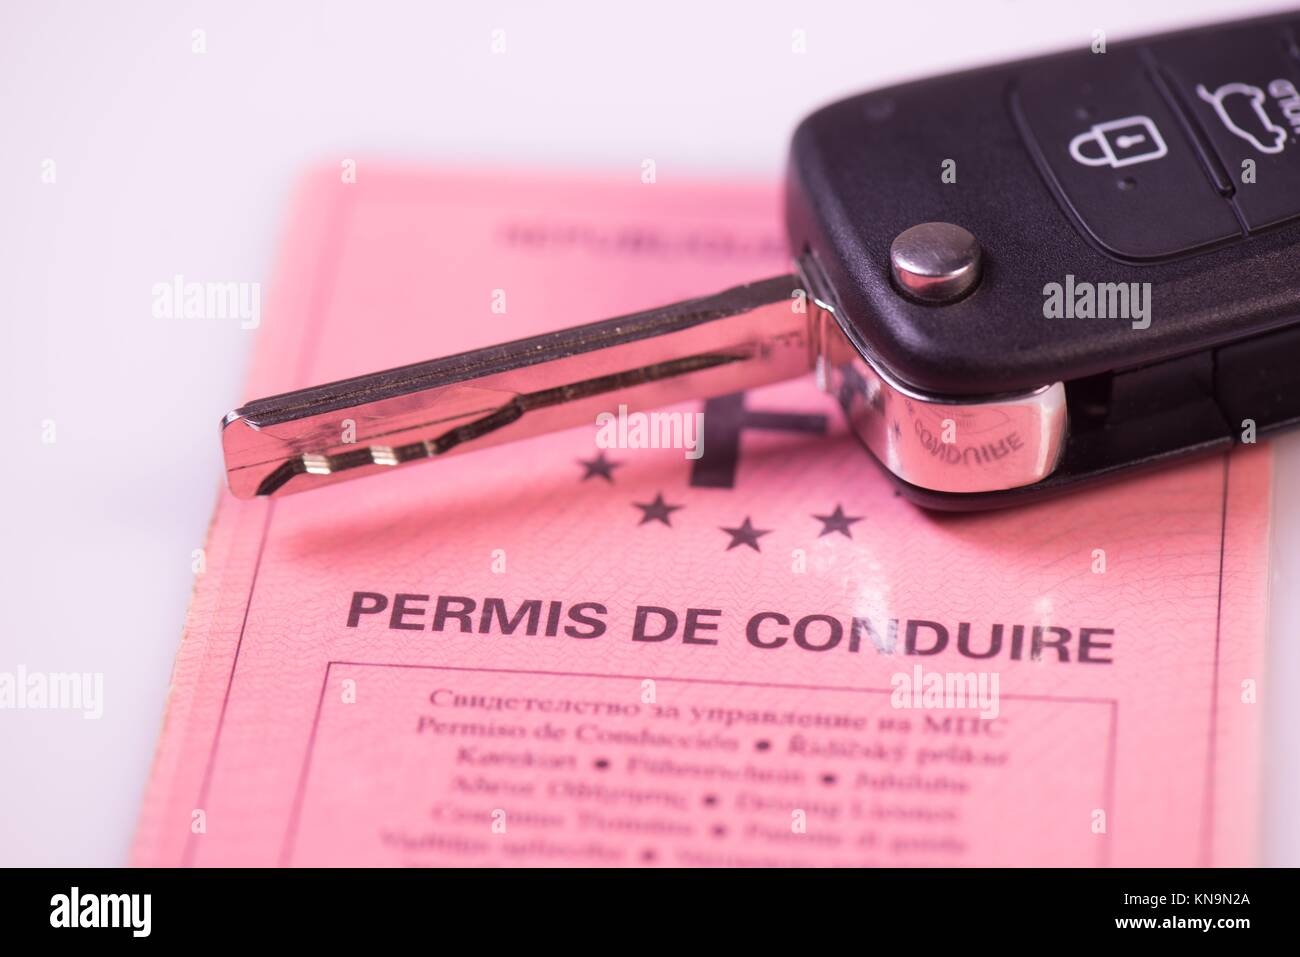 Car keys and drivers license on white background, France. - Stock Image